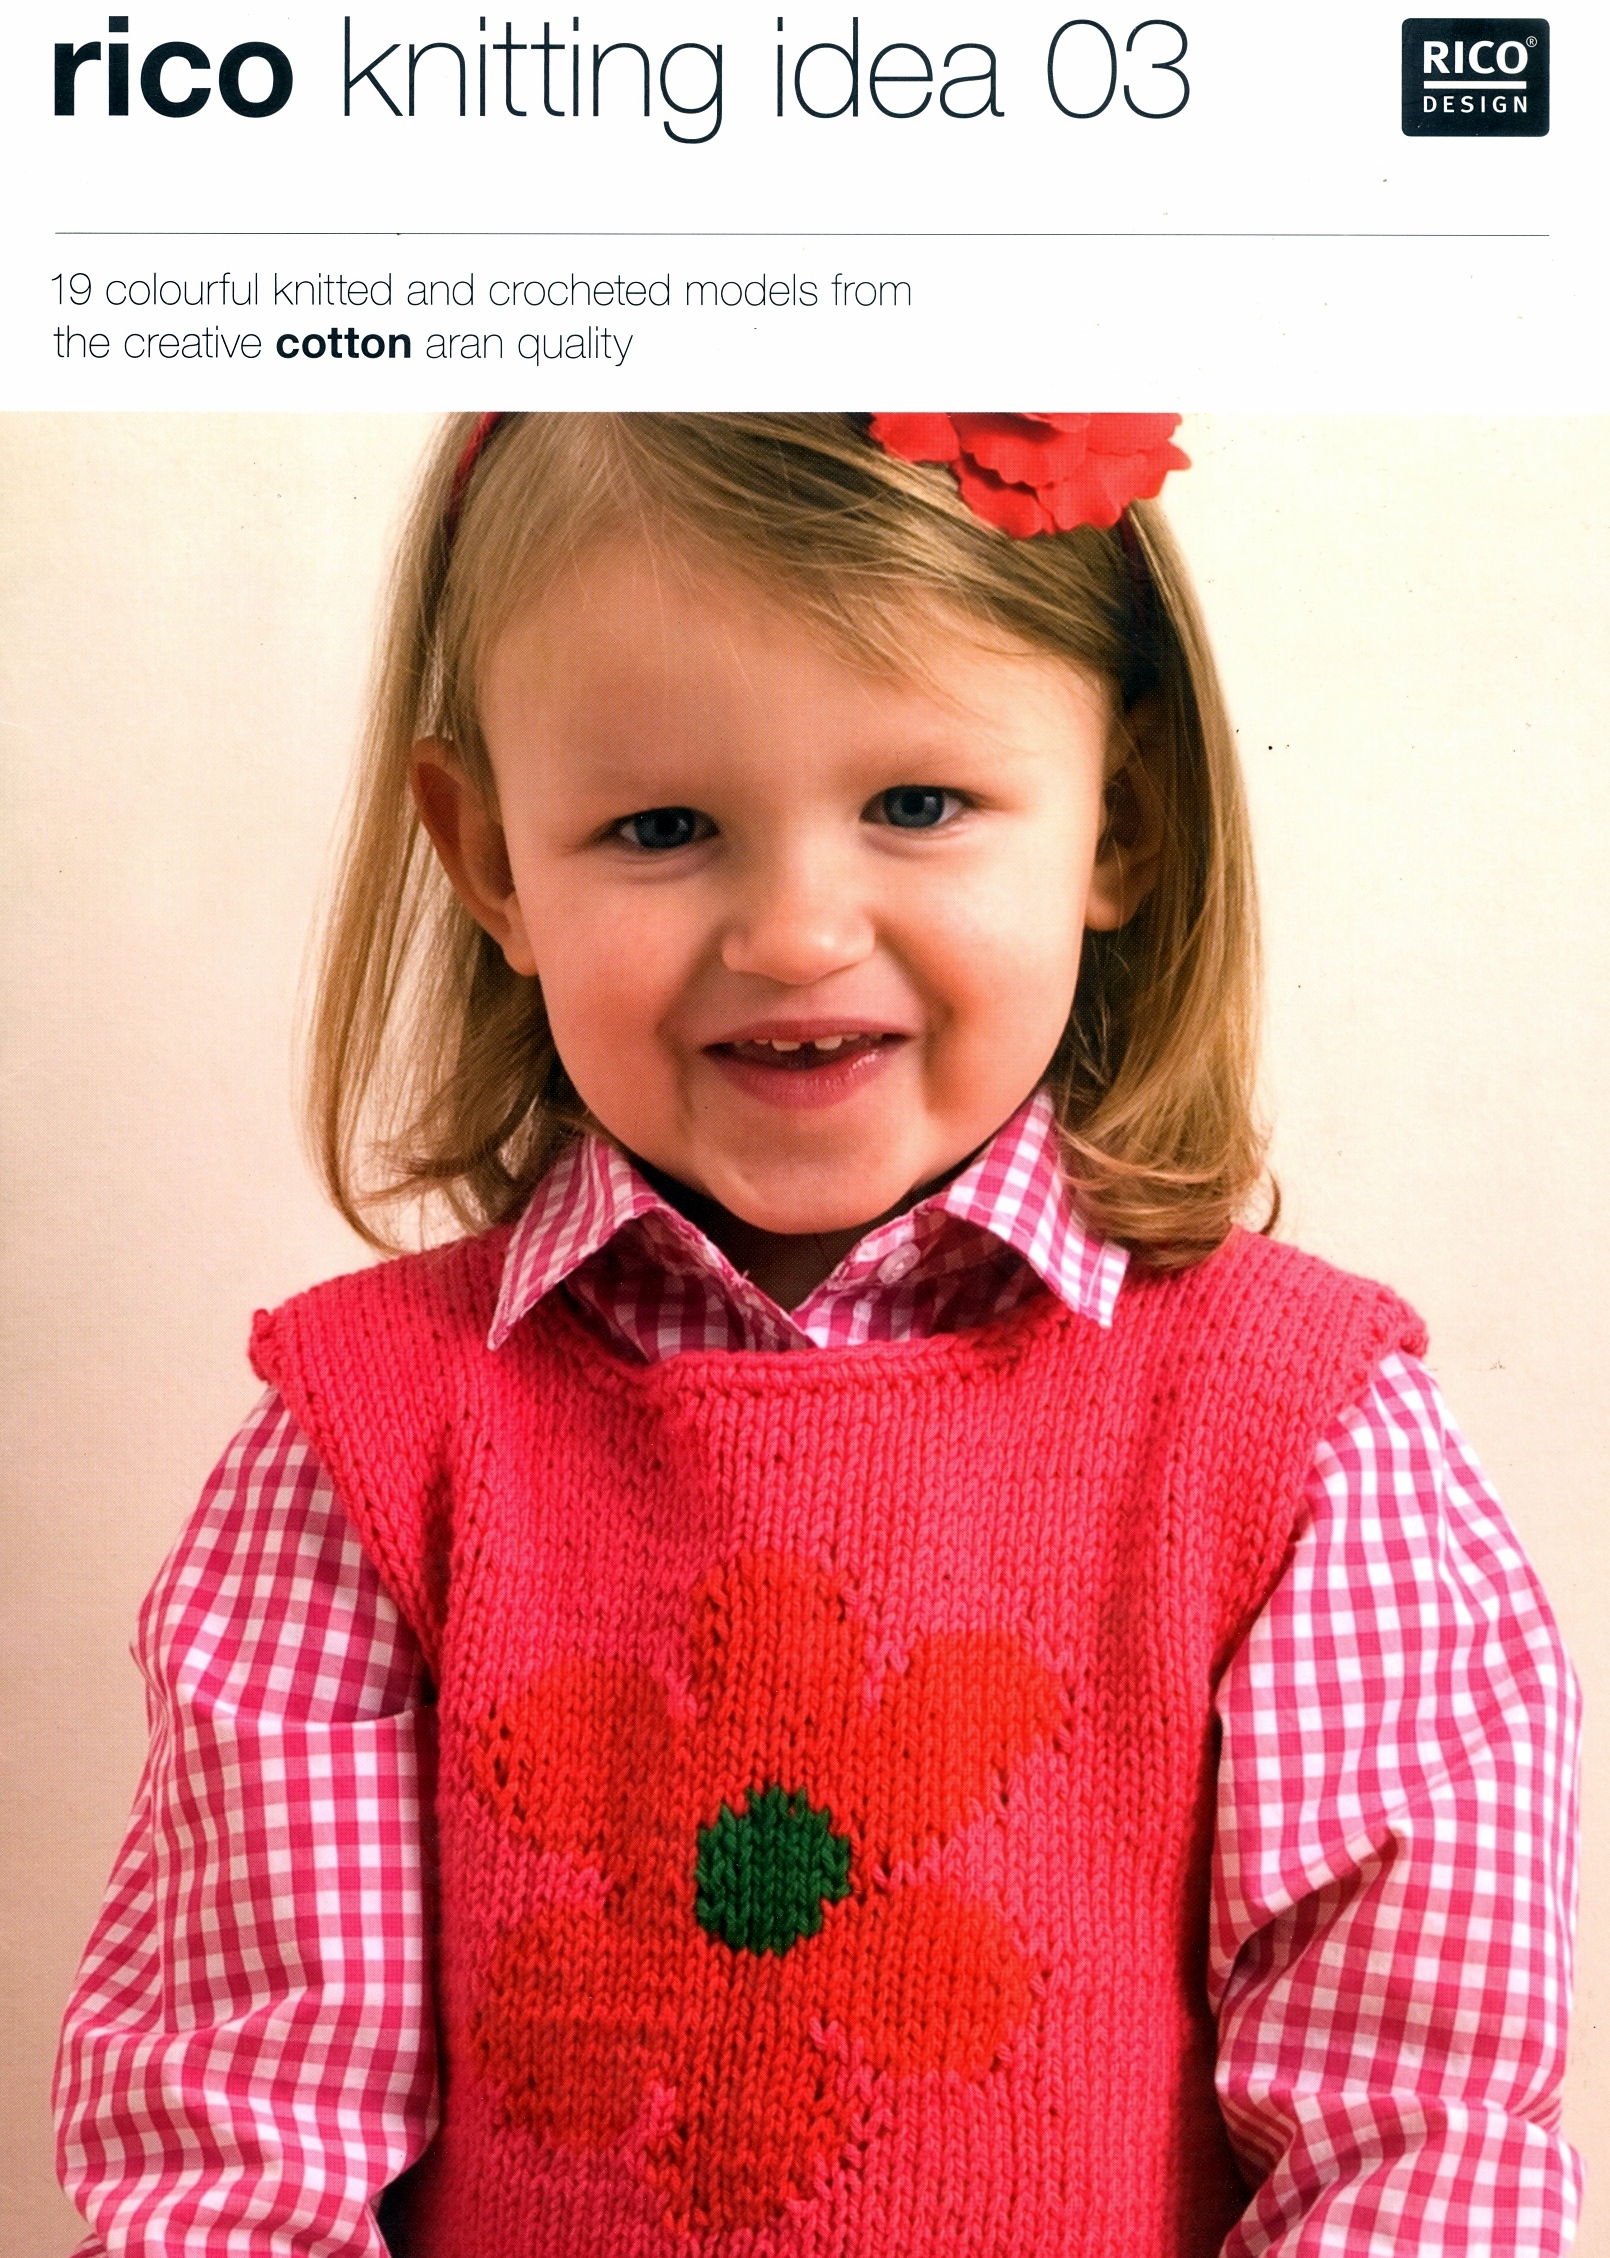 Rico Knitting Idea 03 Booklet. 19 hand knit and crochet patterns for kids &am...